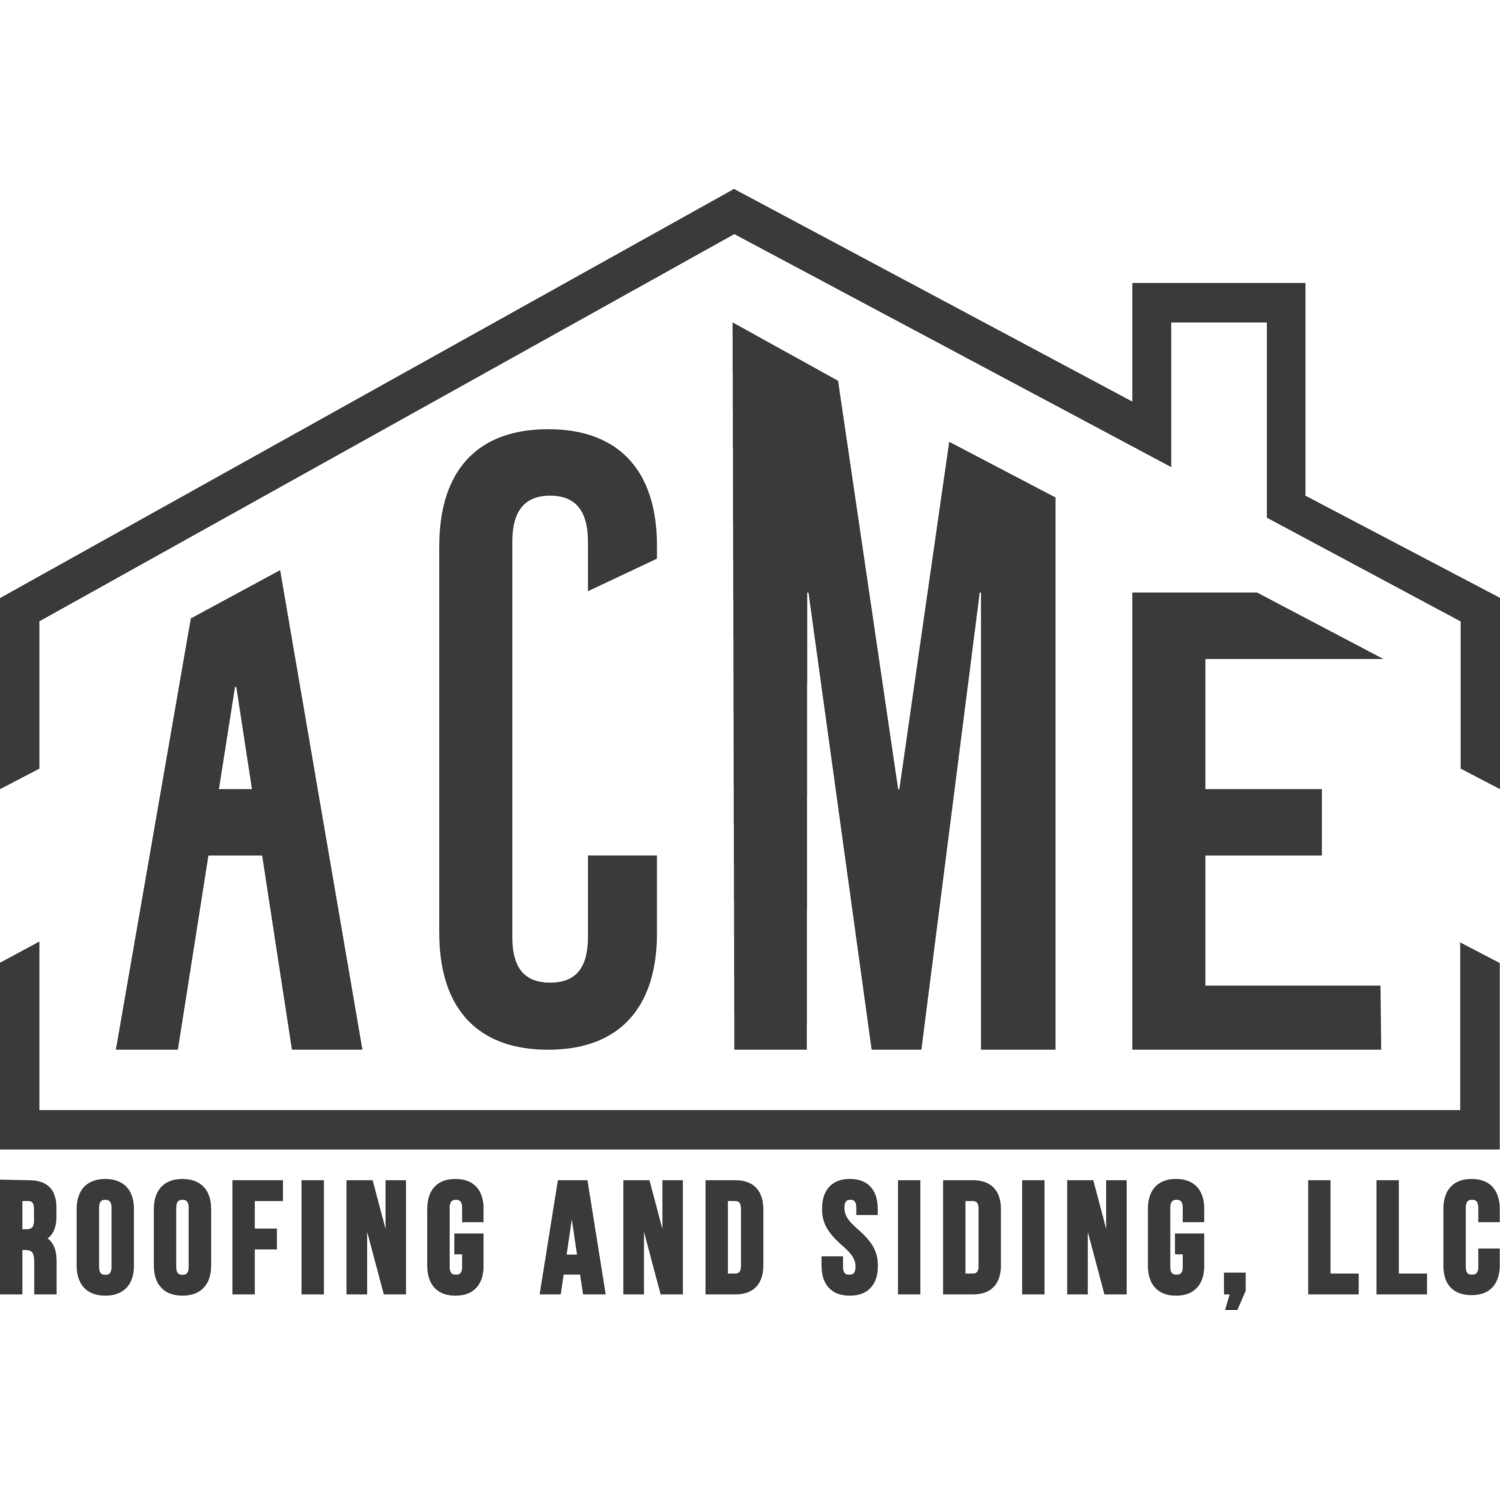 Acme Roofing and Siding